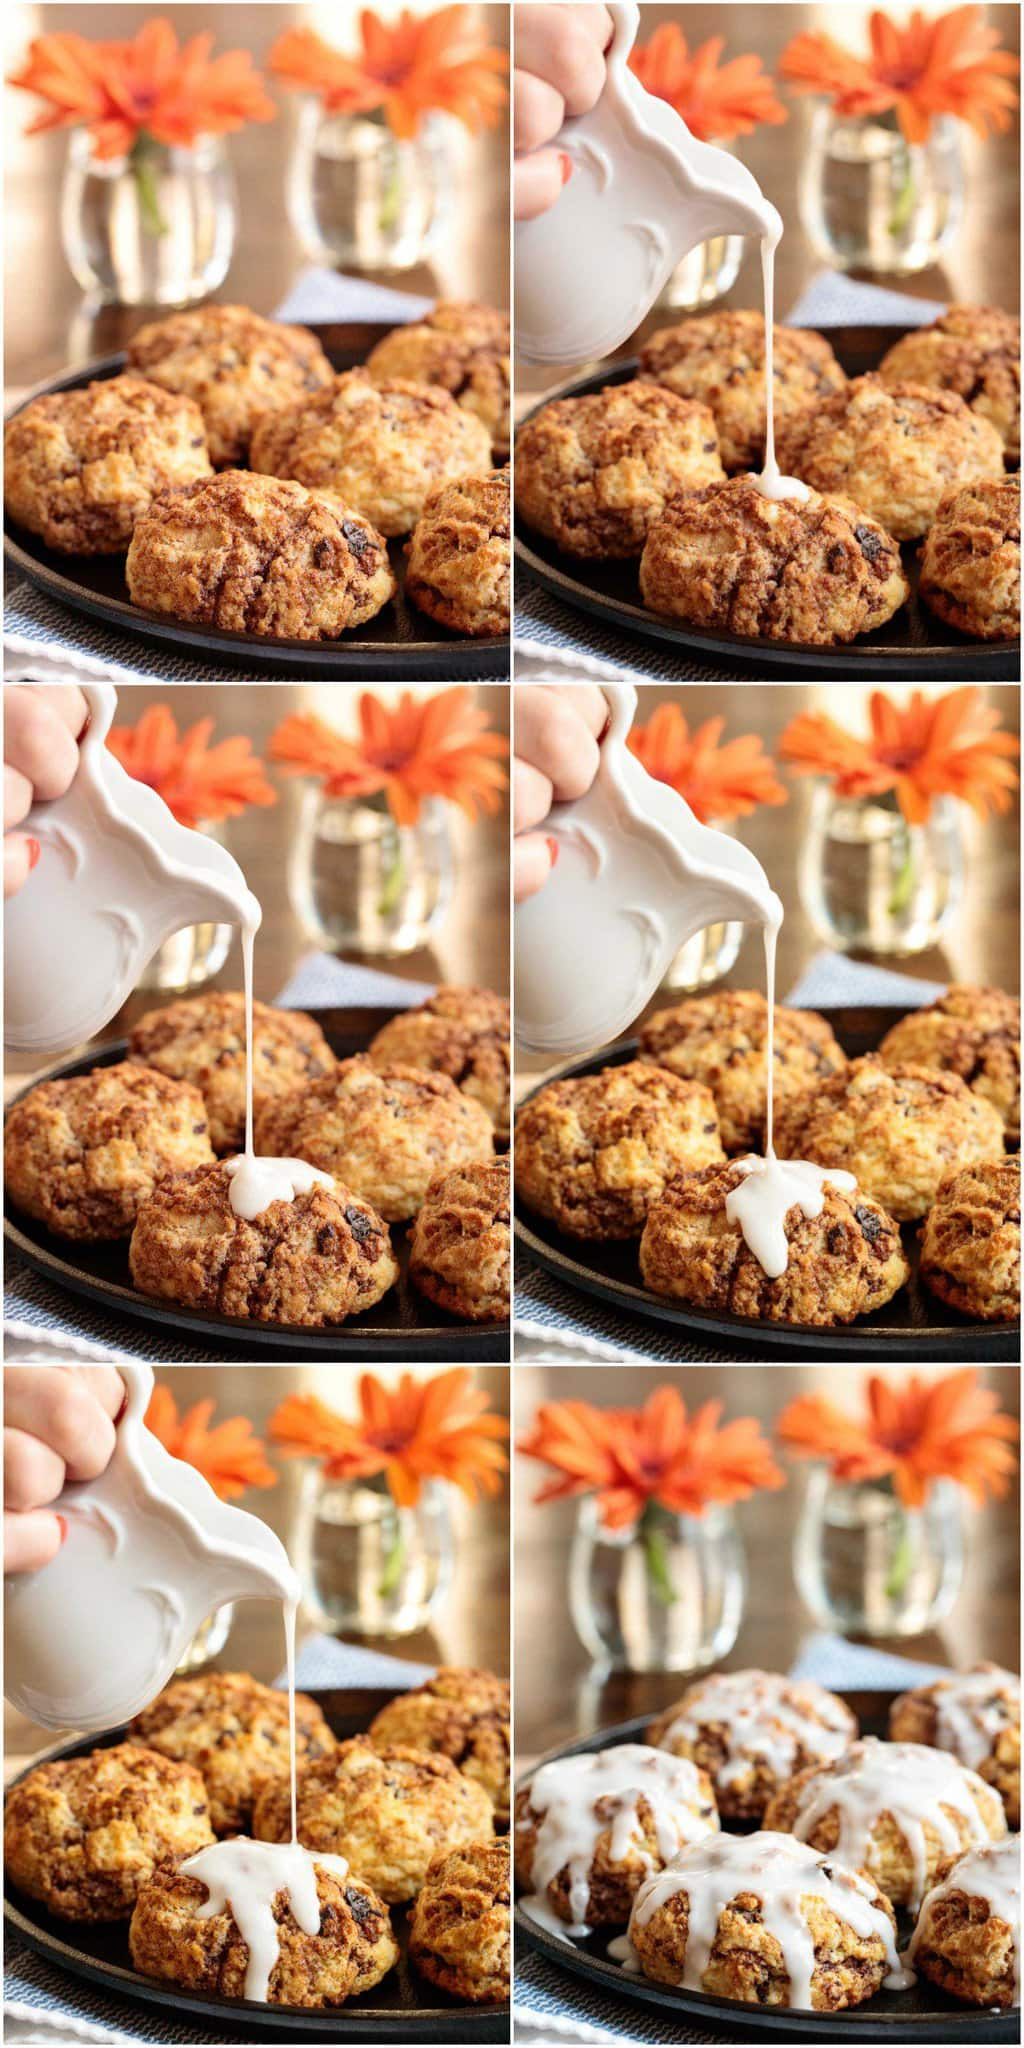 Photo collage demonstrating how to ice Ridiculously Easy Cinnamon Raisin Biscuits.